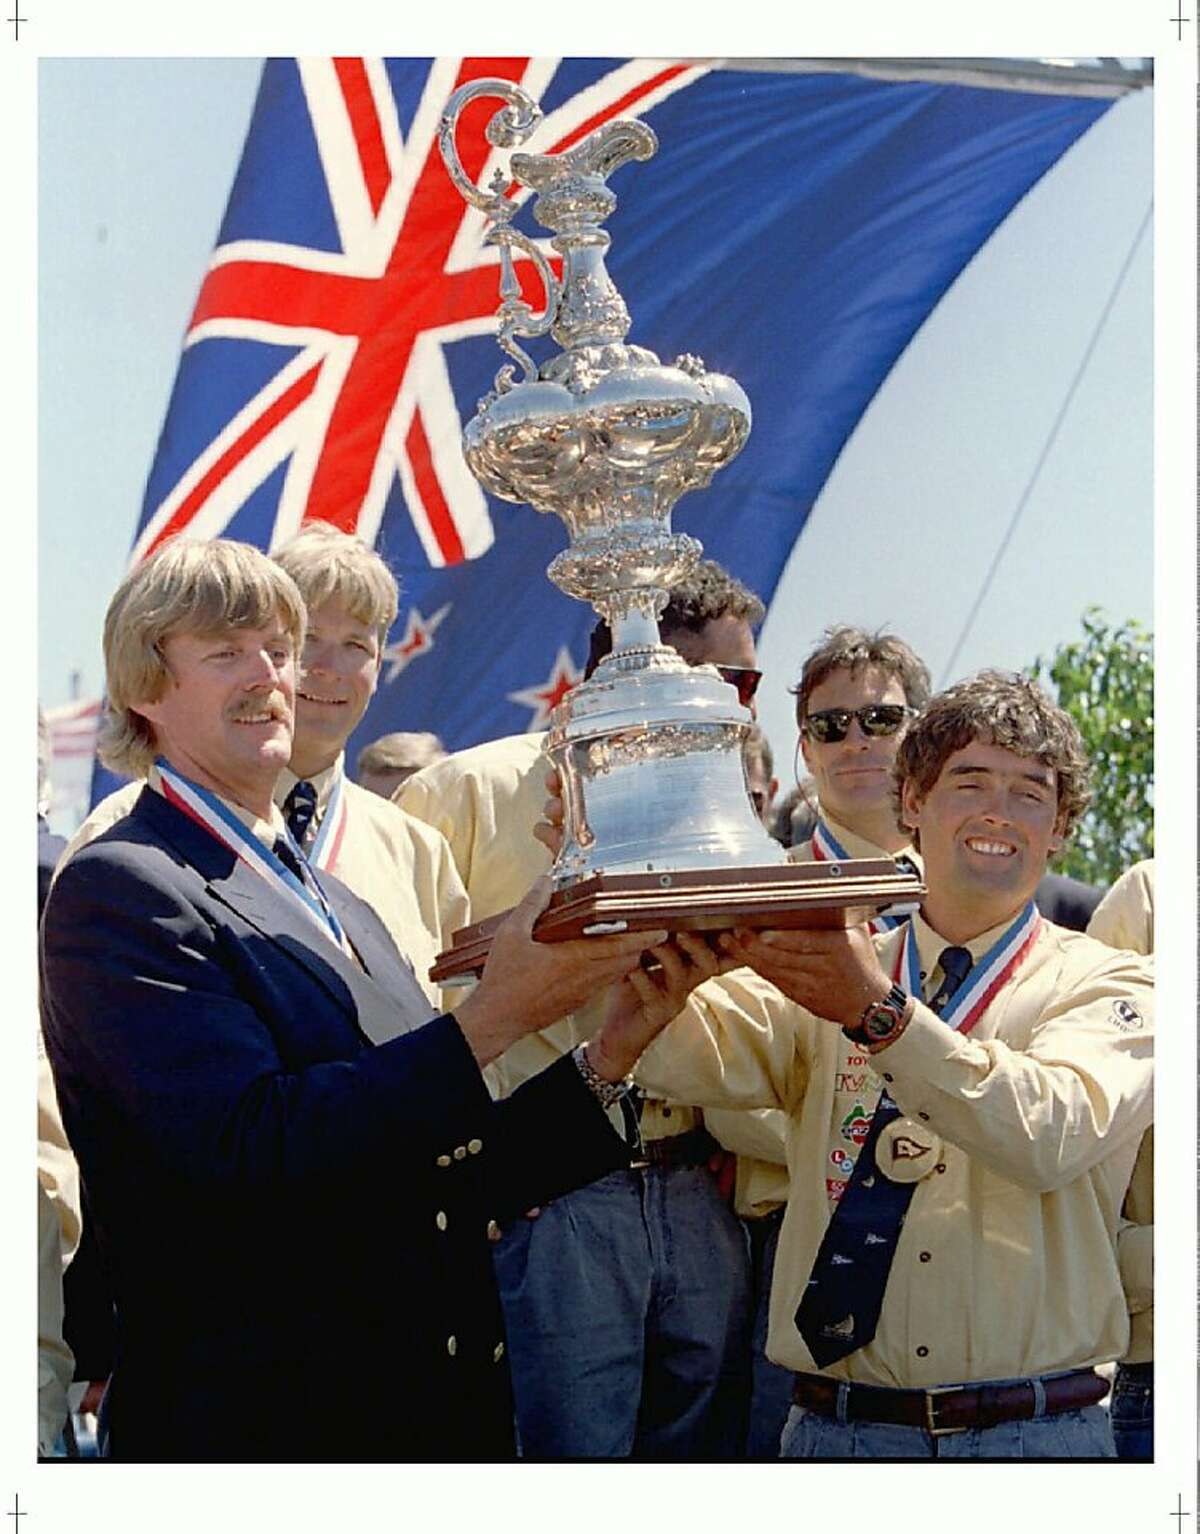 SAD02:AMERICA'S CUP:SAN DIEGO,CALIF.,15MAY95 - Team New Zealand syndicate head Peter Blake (L) and skipper Russell Coutts hold up the America's Cup before the national flag, after it was officially presented to New Zealand for safekeeping, during ceremonies in San Diego, May 15. The oldest trophy in the sporting world, the America's Cup has only been away from American soil twice in its 144-year history. bps/Photo by Blake Sell REUTERS